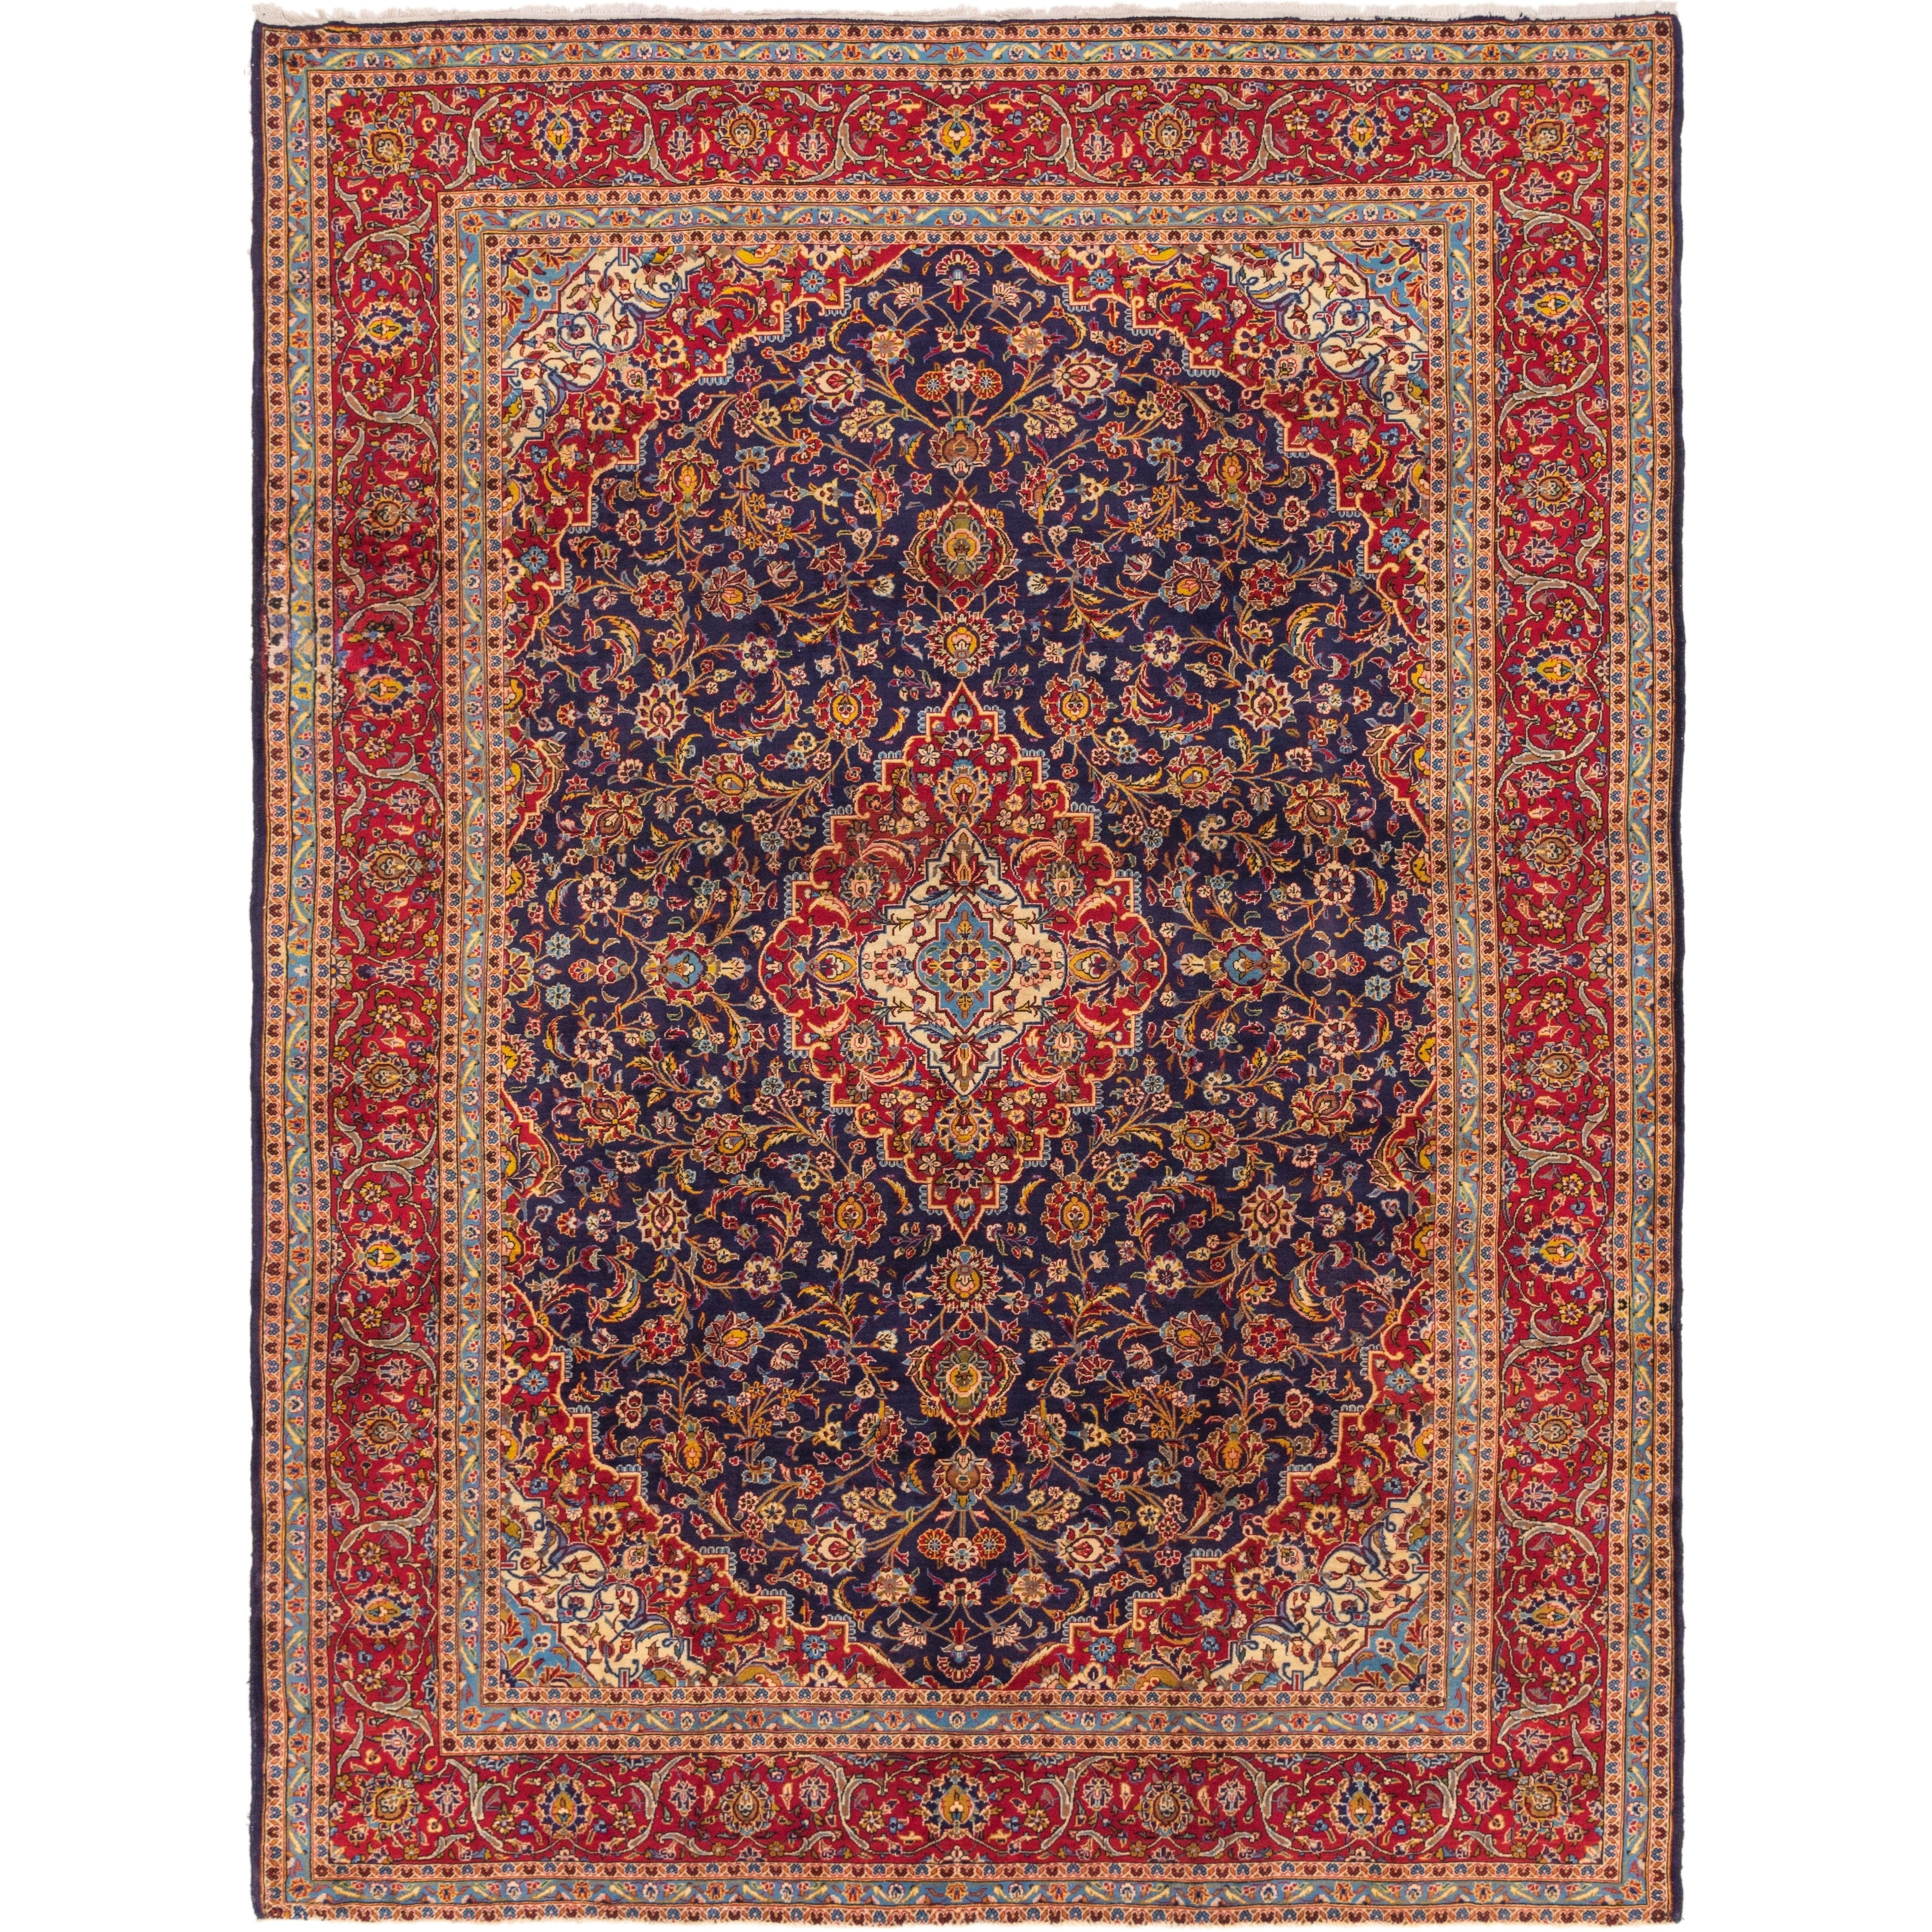 Hand Knotted Kashan Semi Antique Wool Area Rug - 9 10 x 13 3 (Navy blue - 9 10 x 13 3)